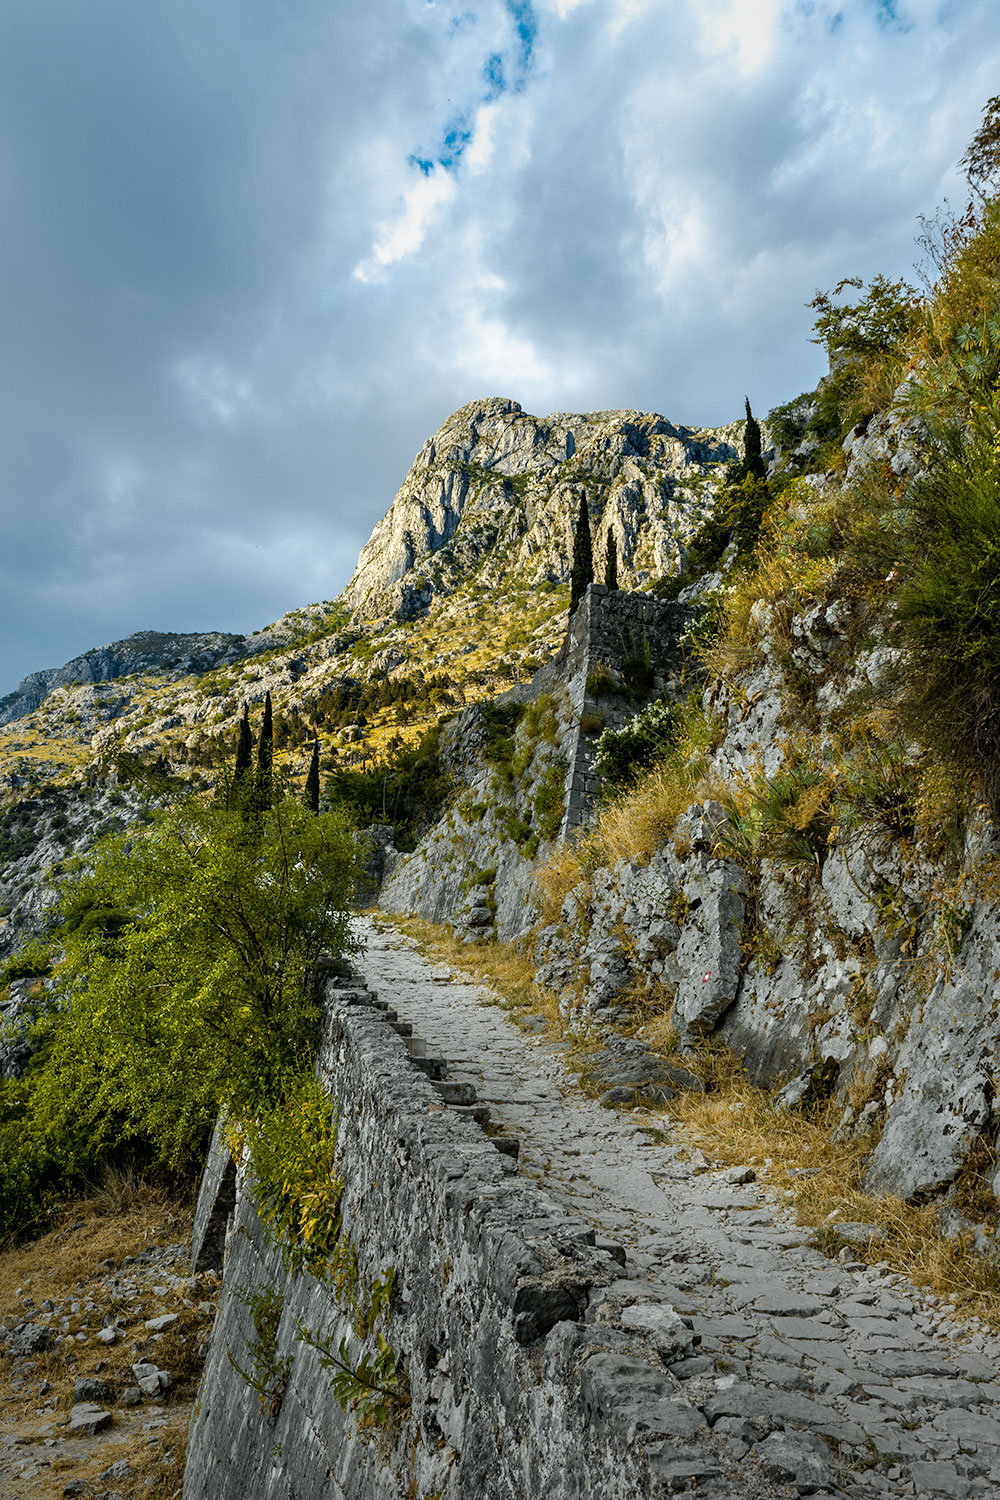 The Montenegro City Walls are a great place to see views of the city, but they're stunning on their own